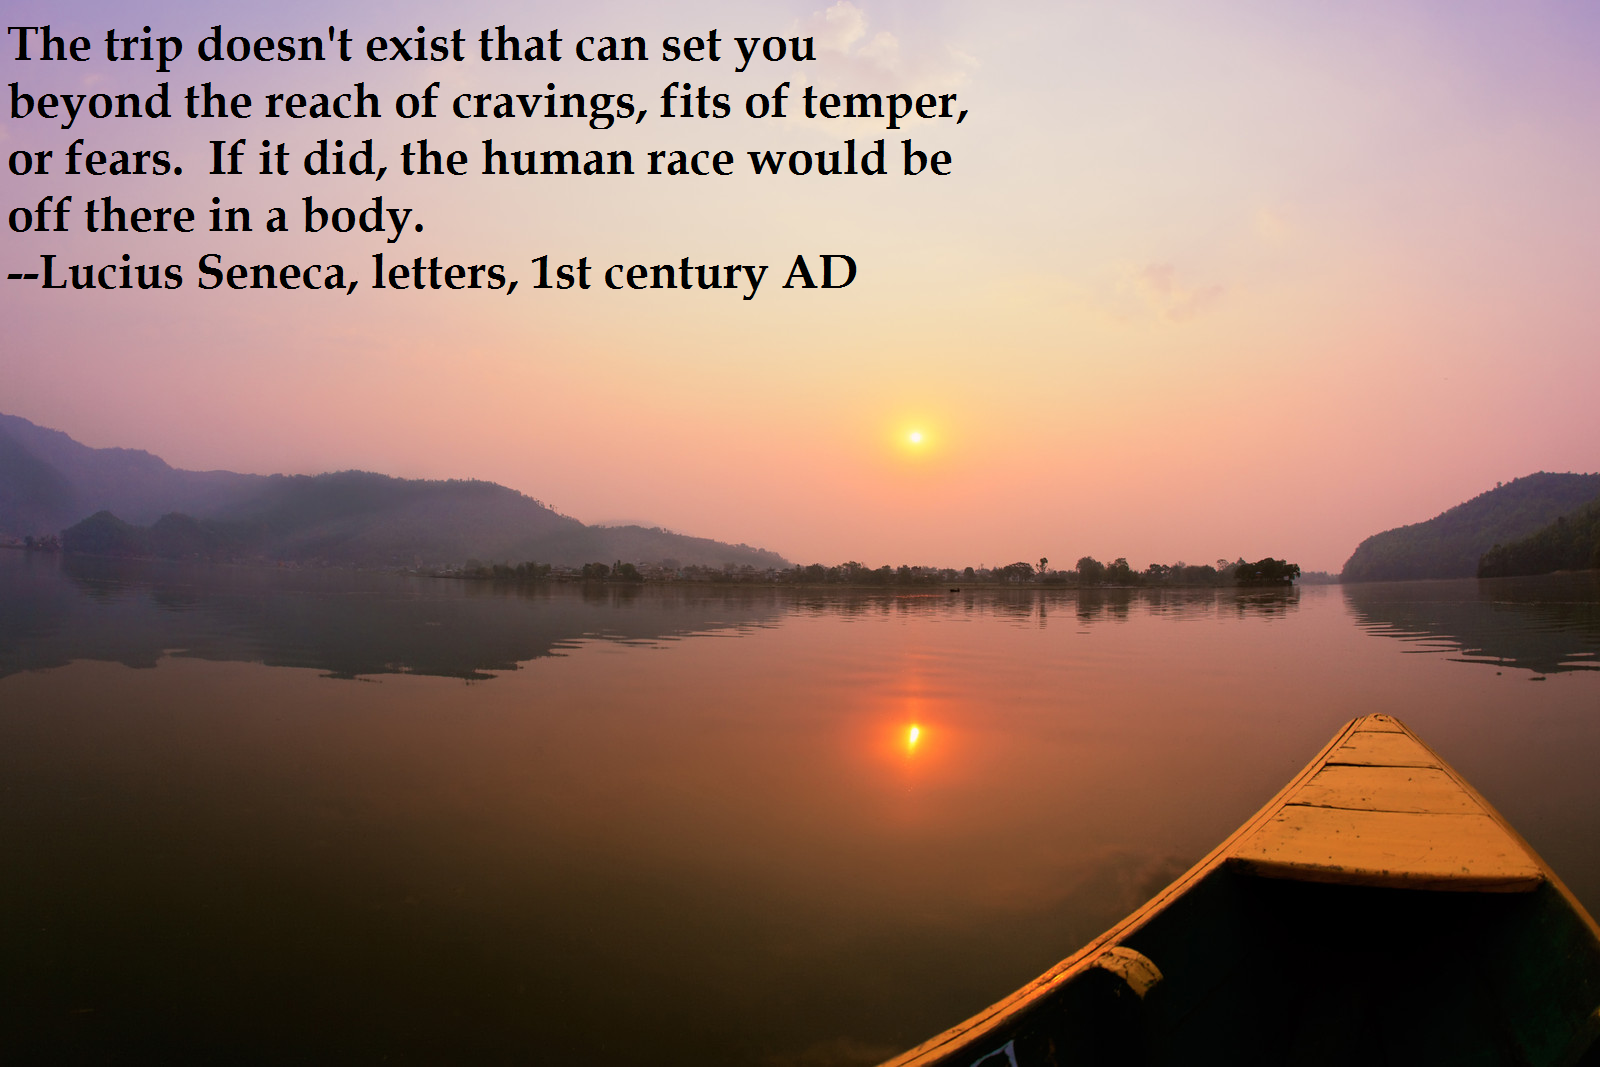 """The trip doesn't exist that can set you beyond the reach of cravings, fits of temper, or fears. If it did, the human race would be off there in a body."" ~Lucius Seneca [OC [1600 x 1067]"